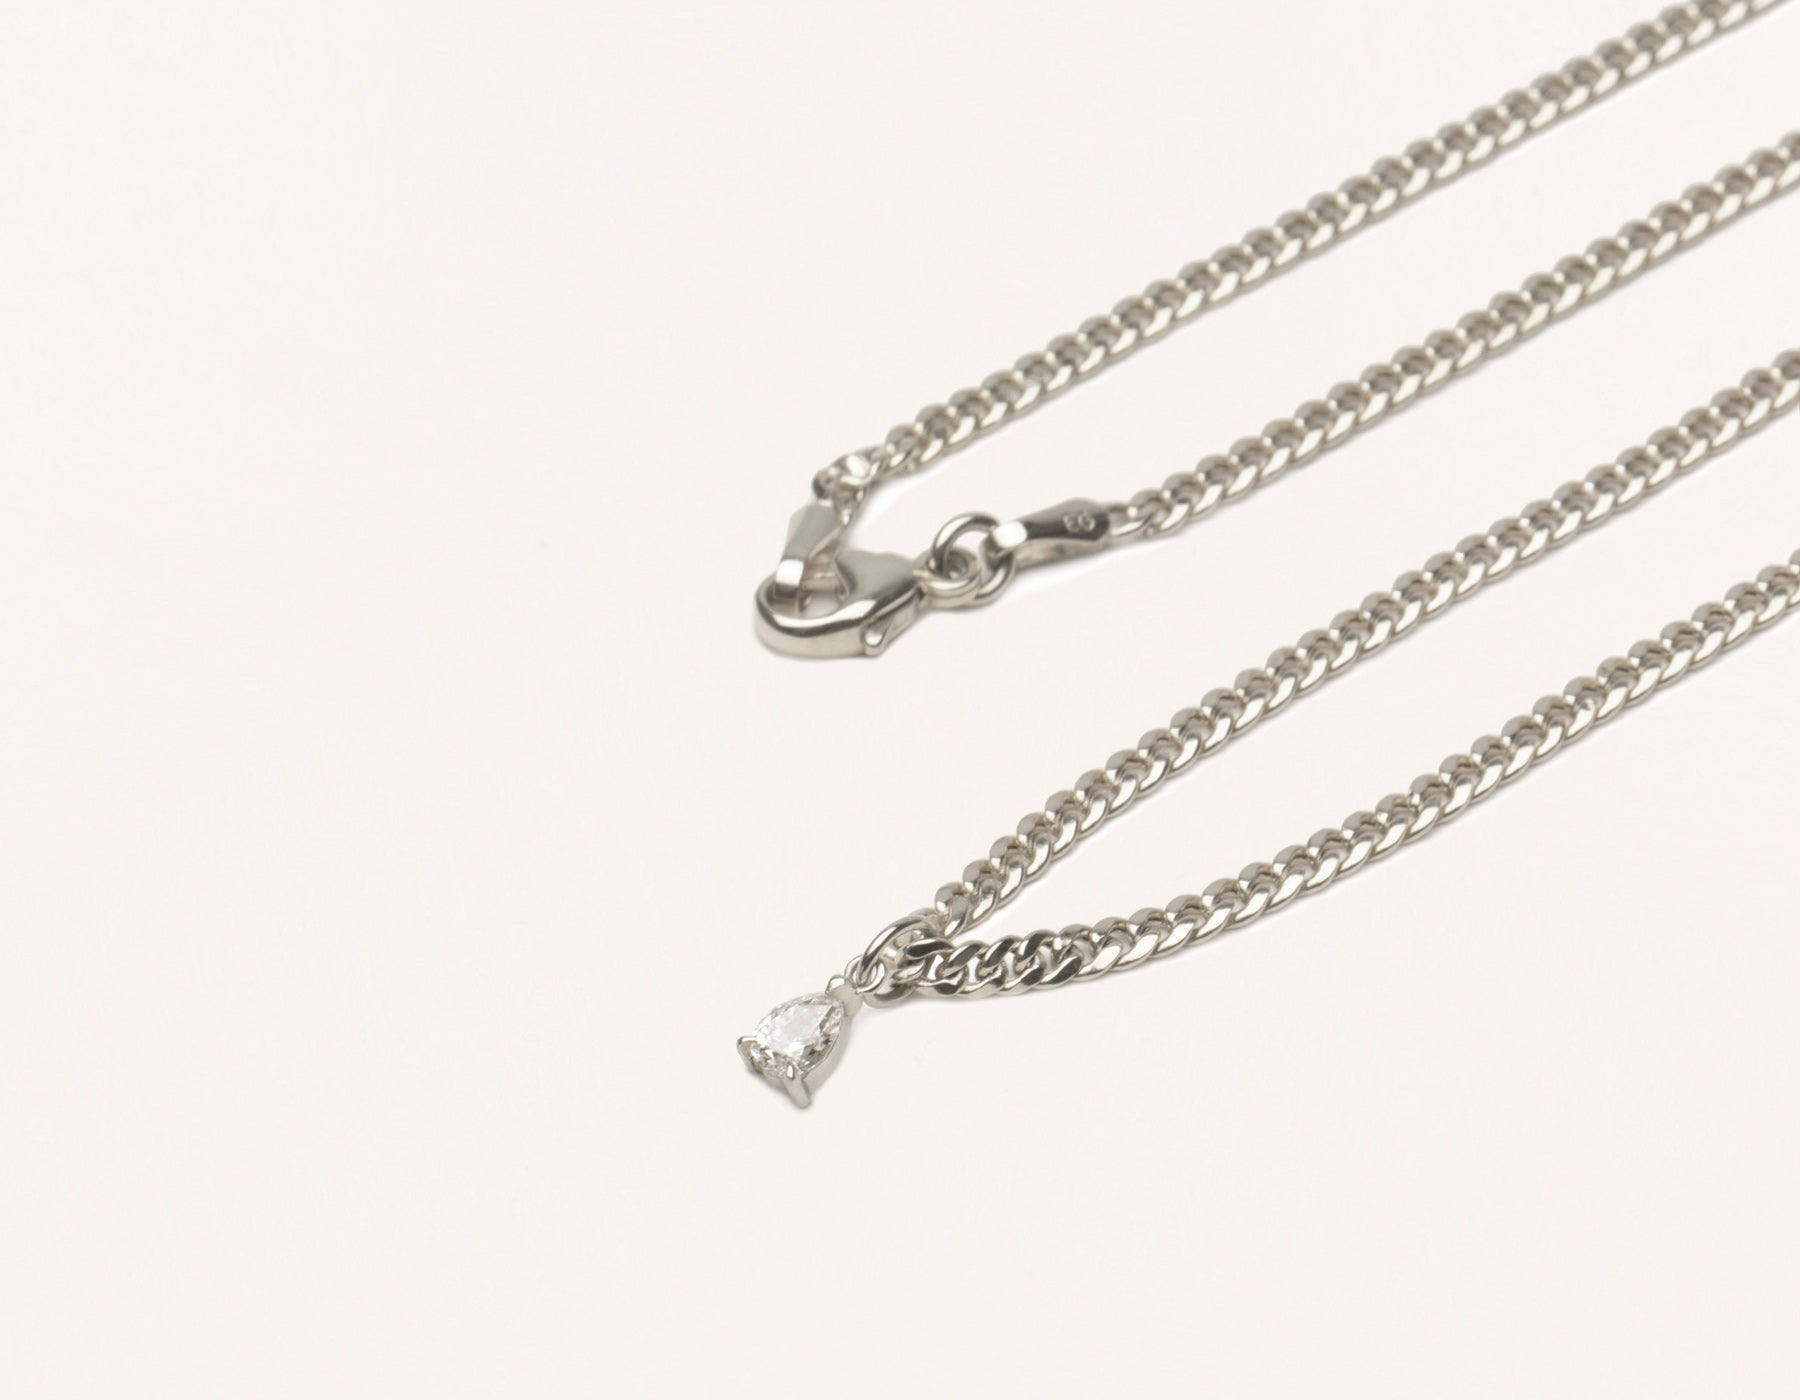 Simple Classic 14K Solid Gold Pear Diamond Pendant on thick Cuban Link chain with lobster clasp Vrai & oro, 14K White Gold